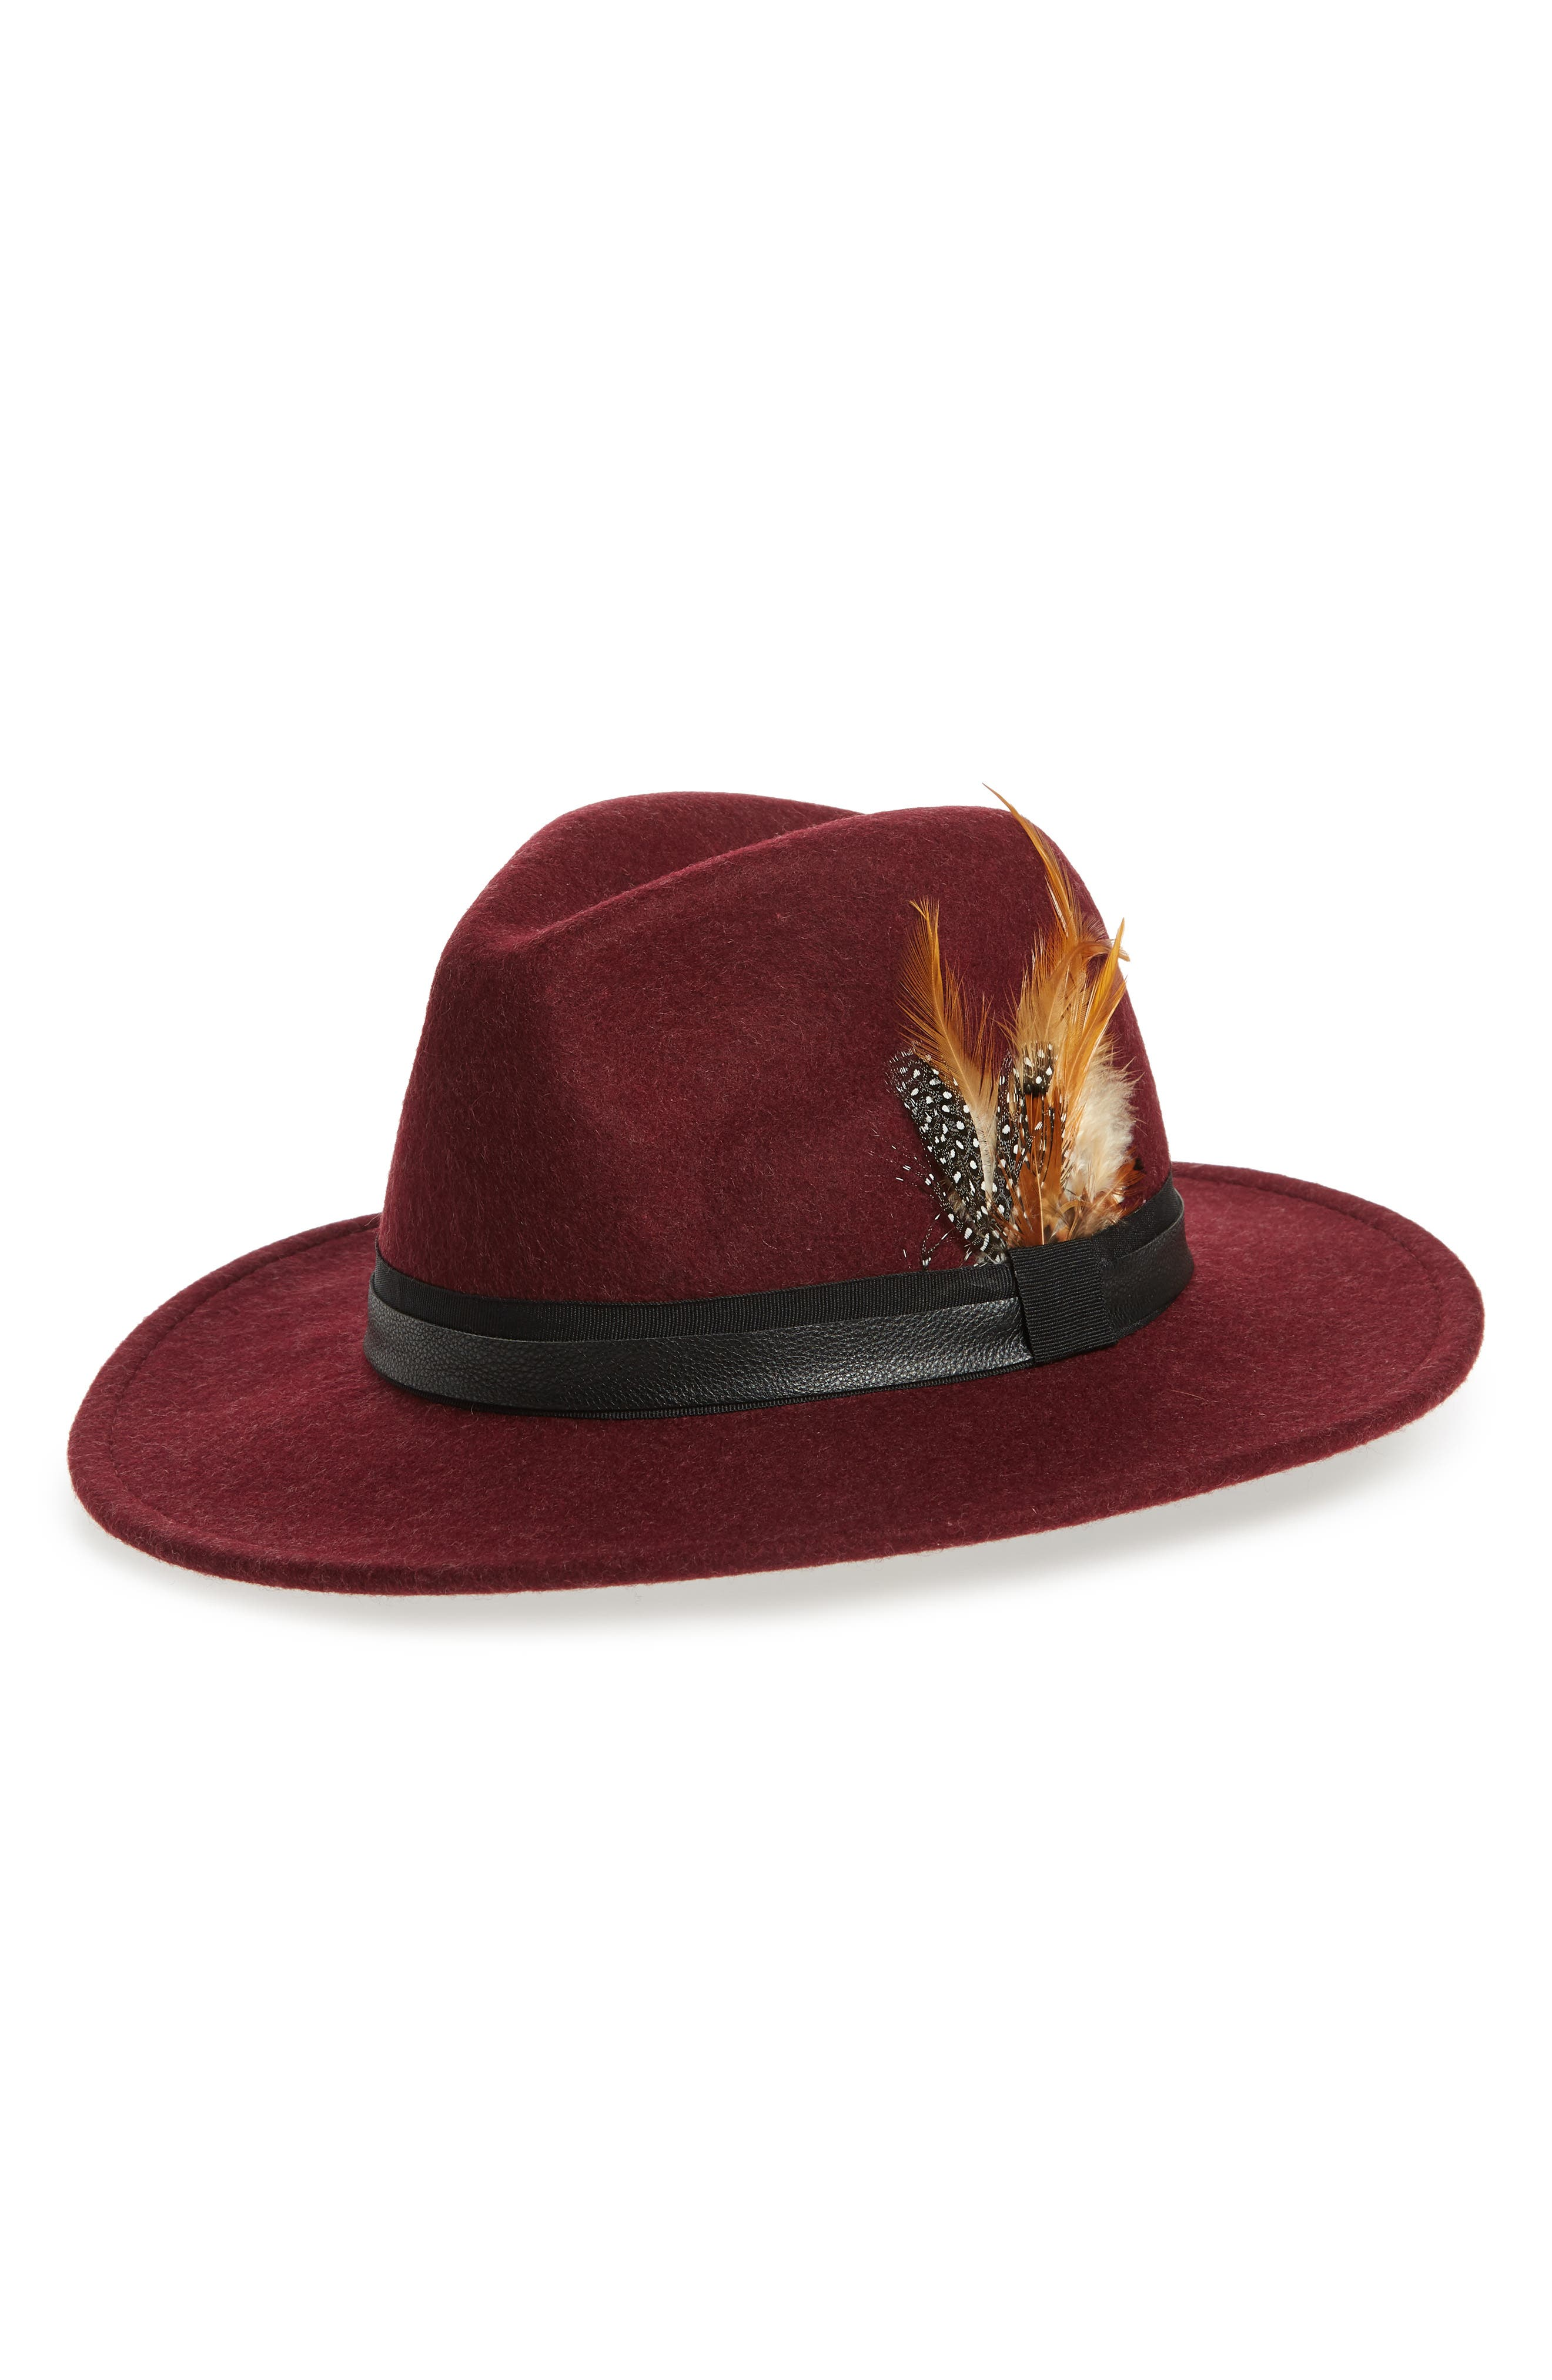 Feather Trim Panama Hat, Main, color, BURGUNDY